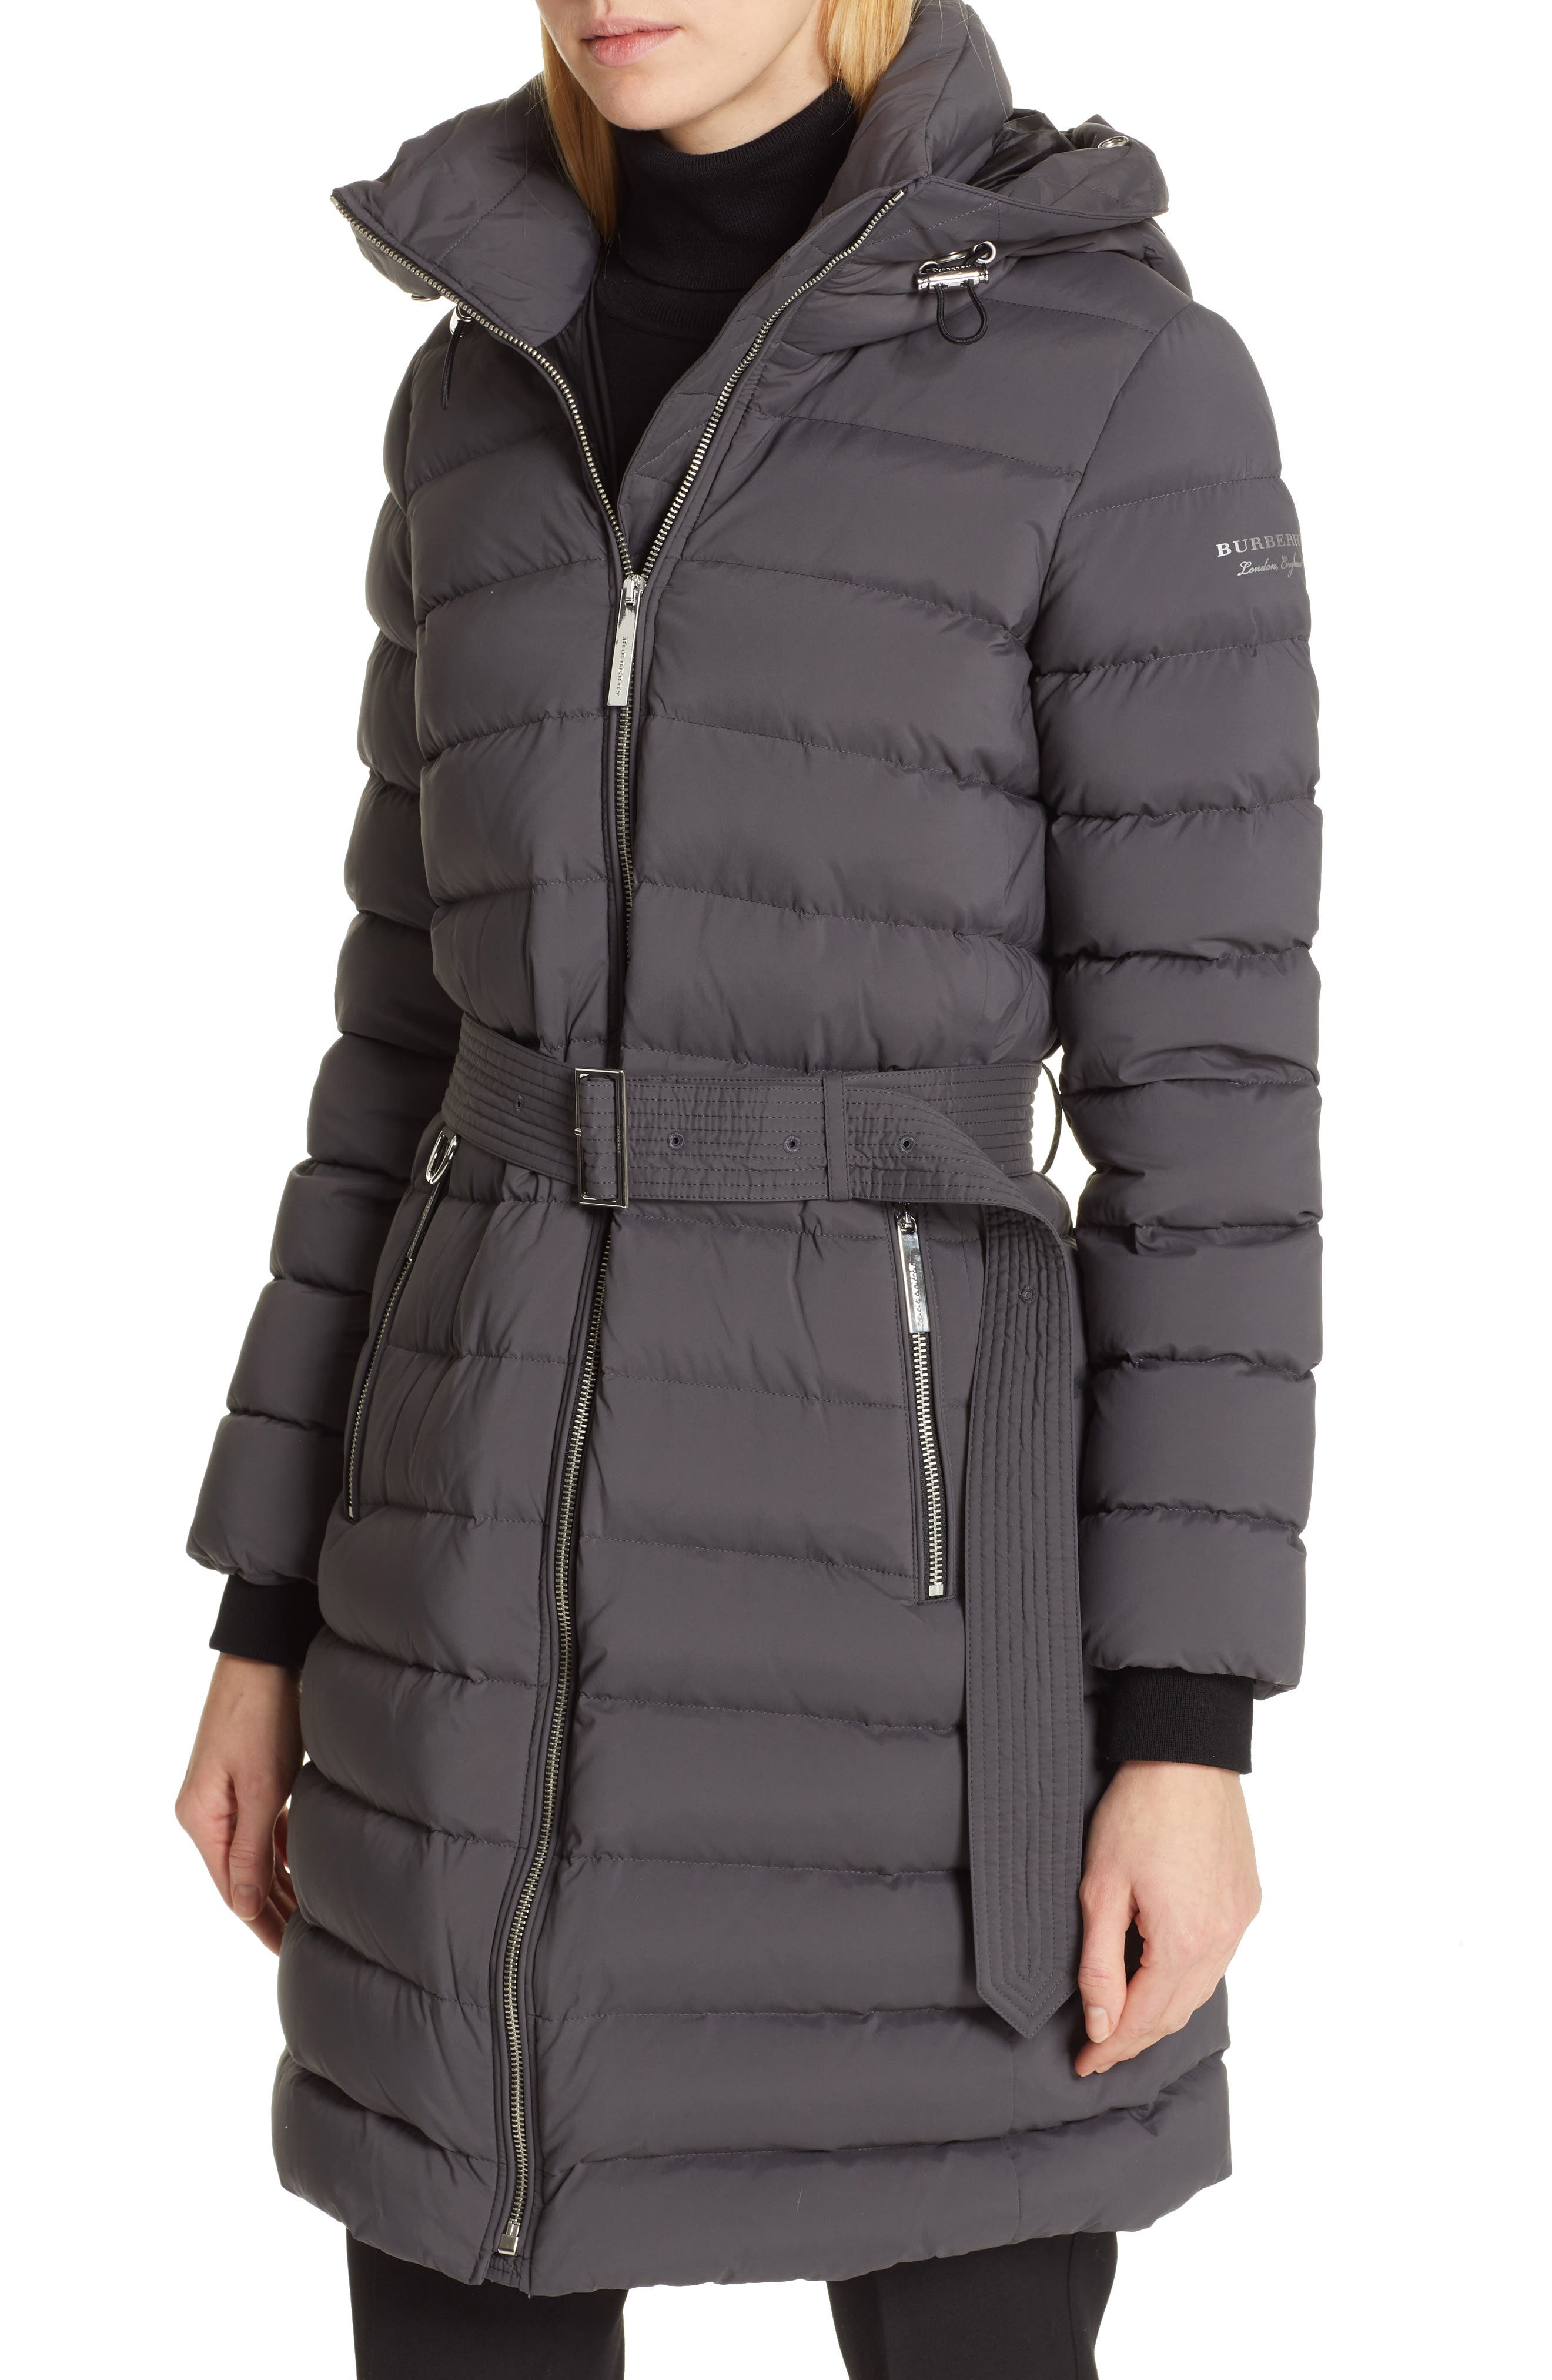 BURBERRY, Limehouse Quilted Down Puffer Coat with Removable Genuine Shearling Trim, Alternate thumbnail 2, color, MID GREY